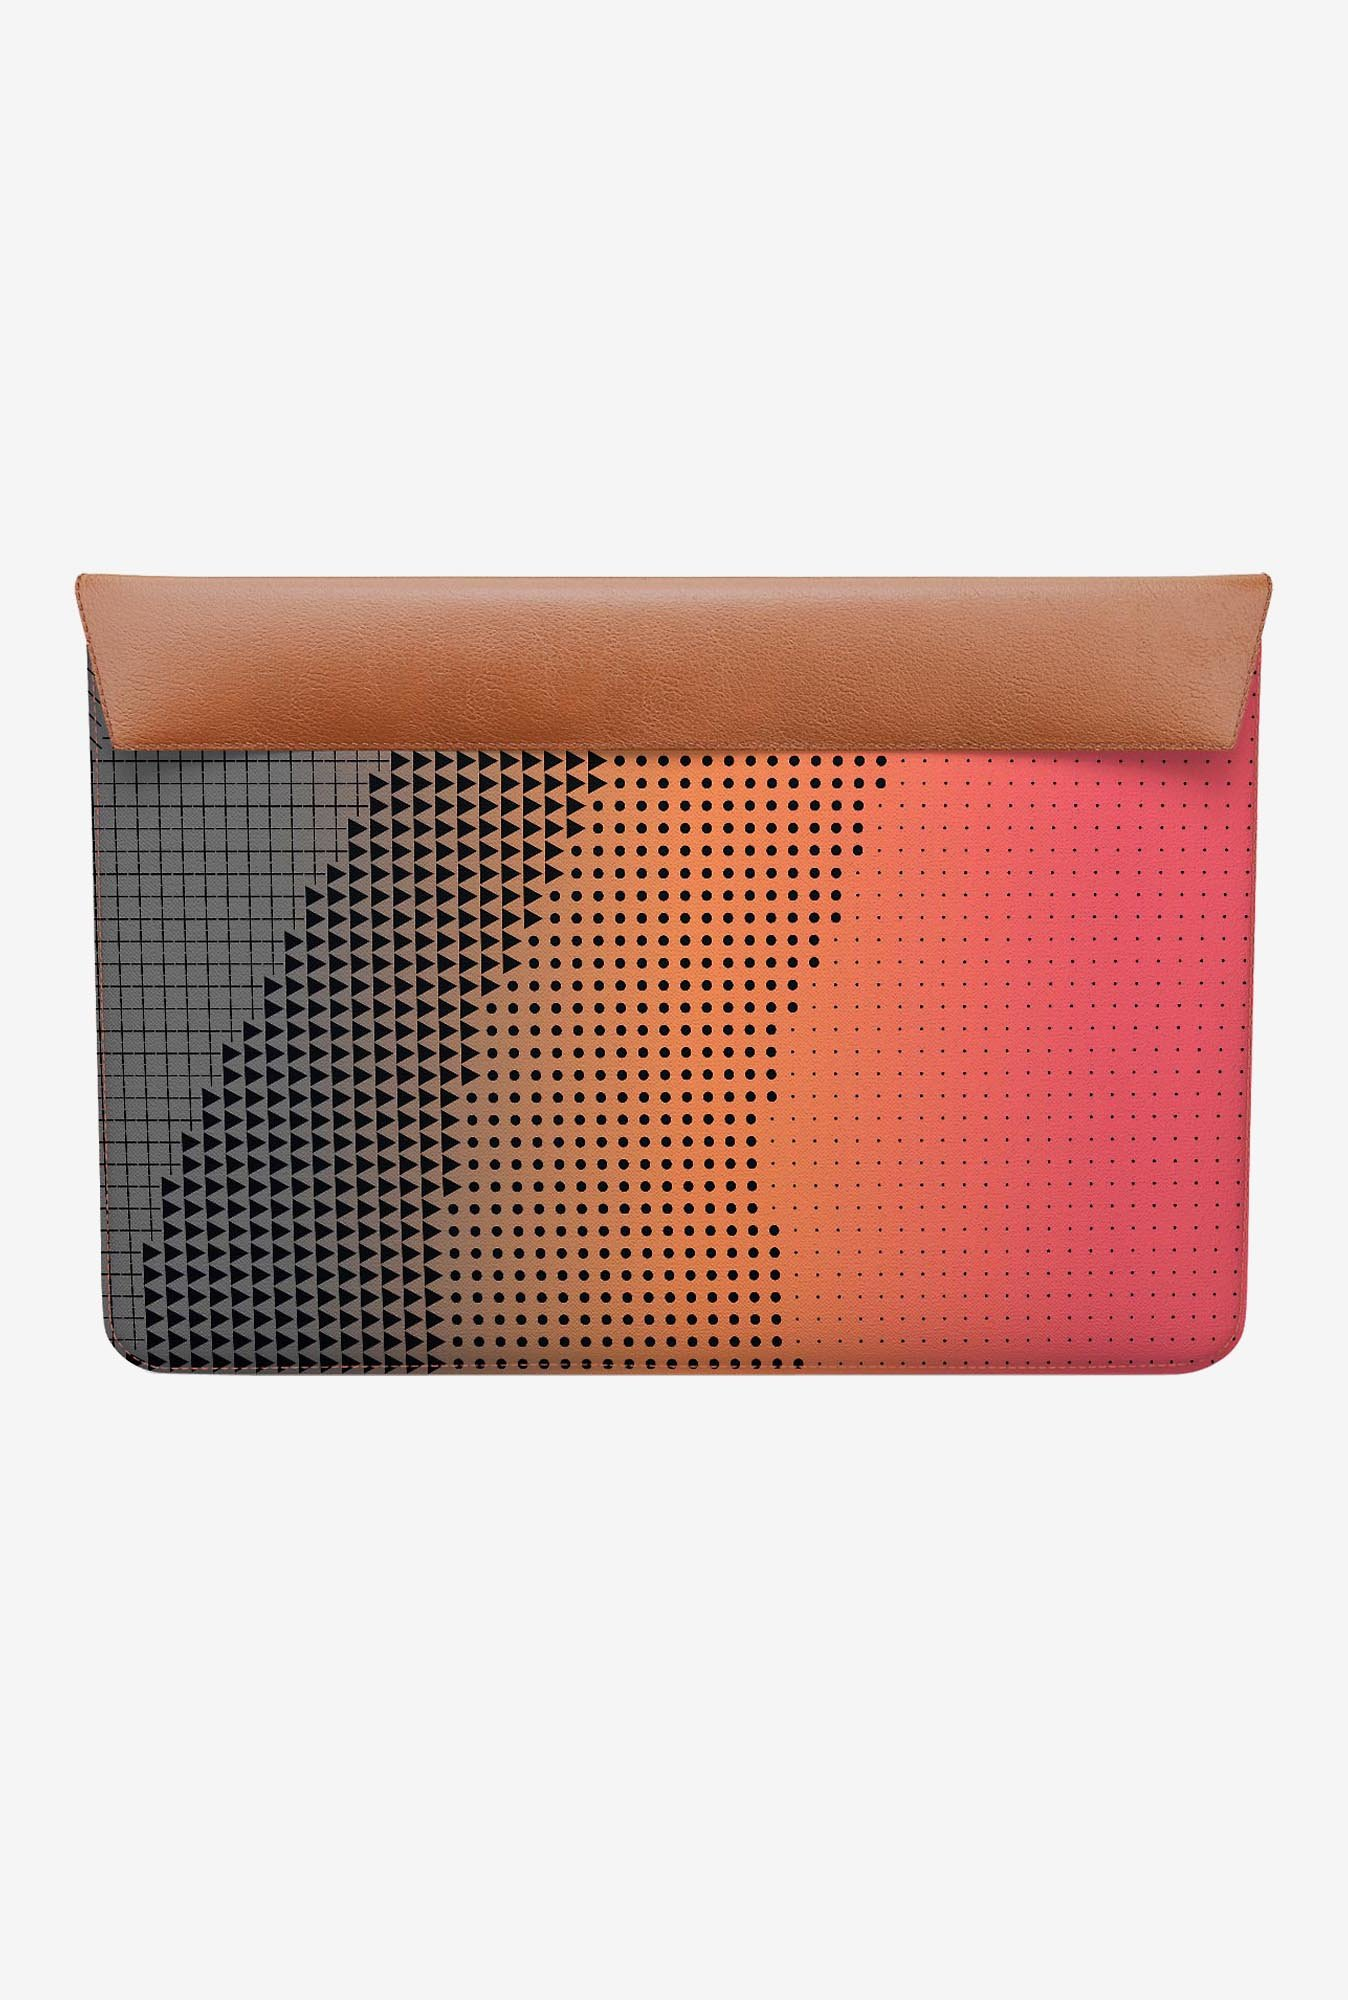 "DailyObjects Synegryde Macbook Air 11"" Envelope Sleeve"